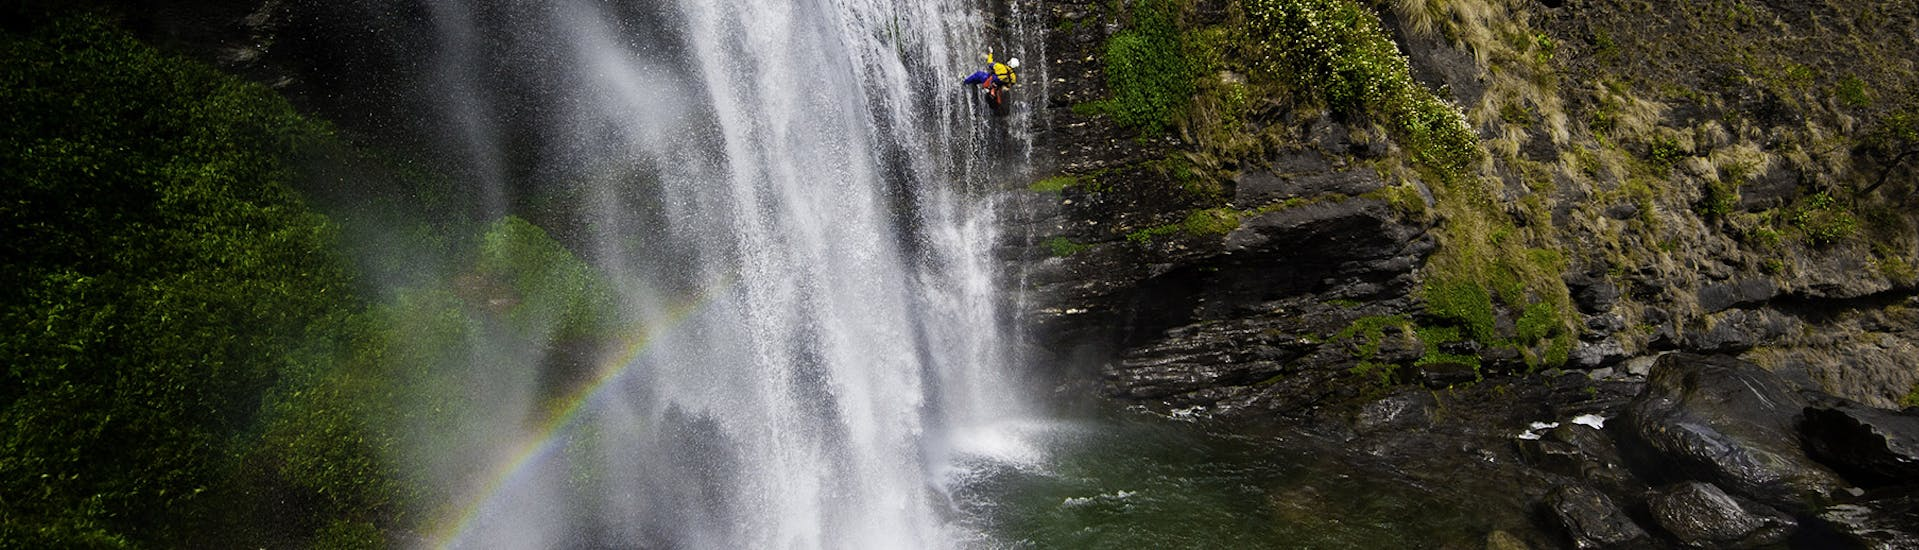 Half-Day Canyoning in Ossau Valley for Bachelor Parties